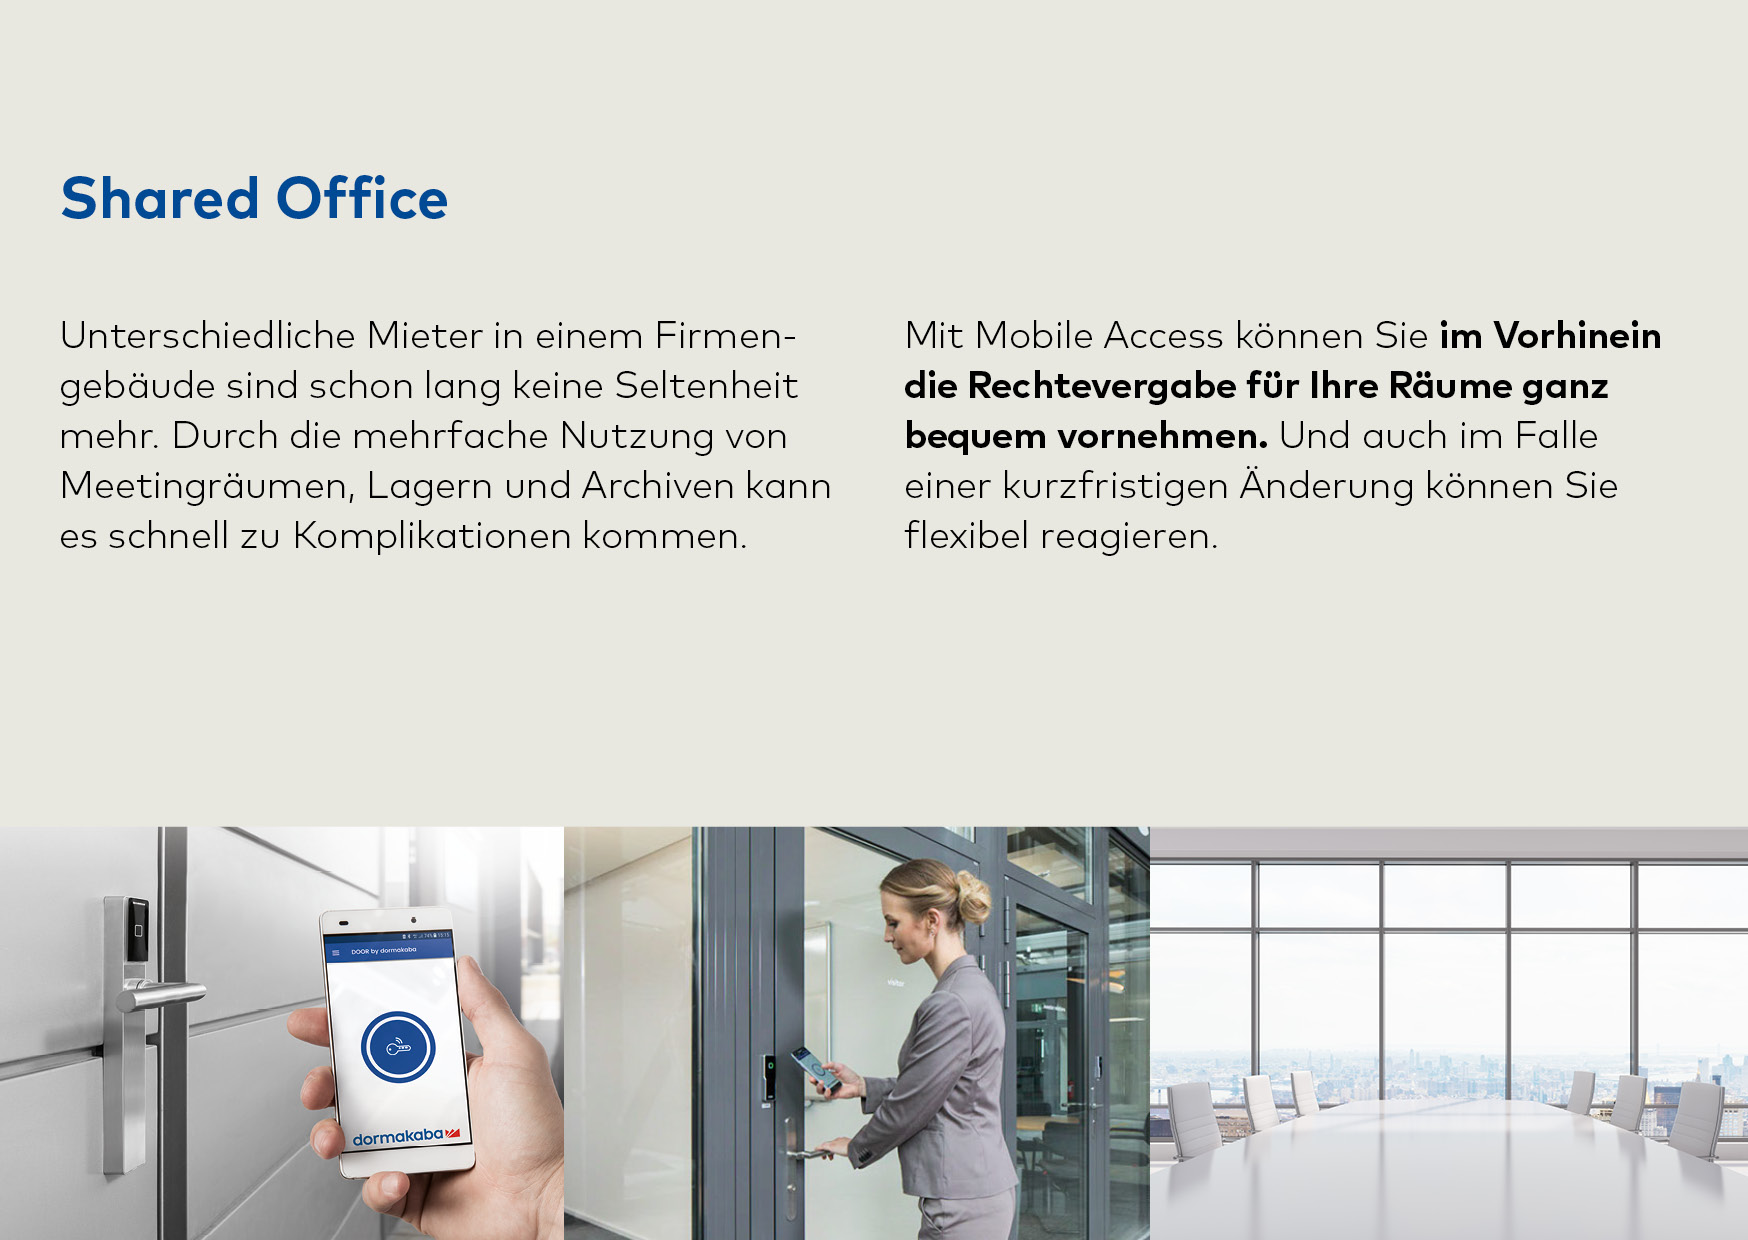 Shared_Office_Mobile_Access